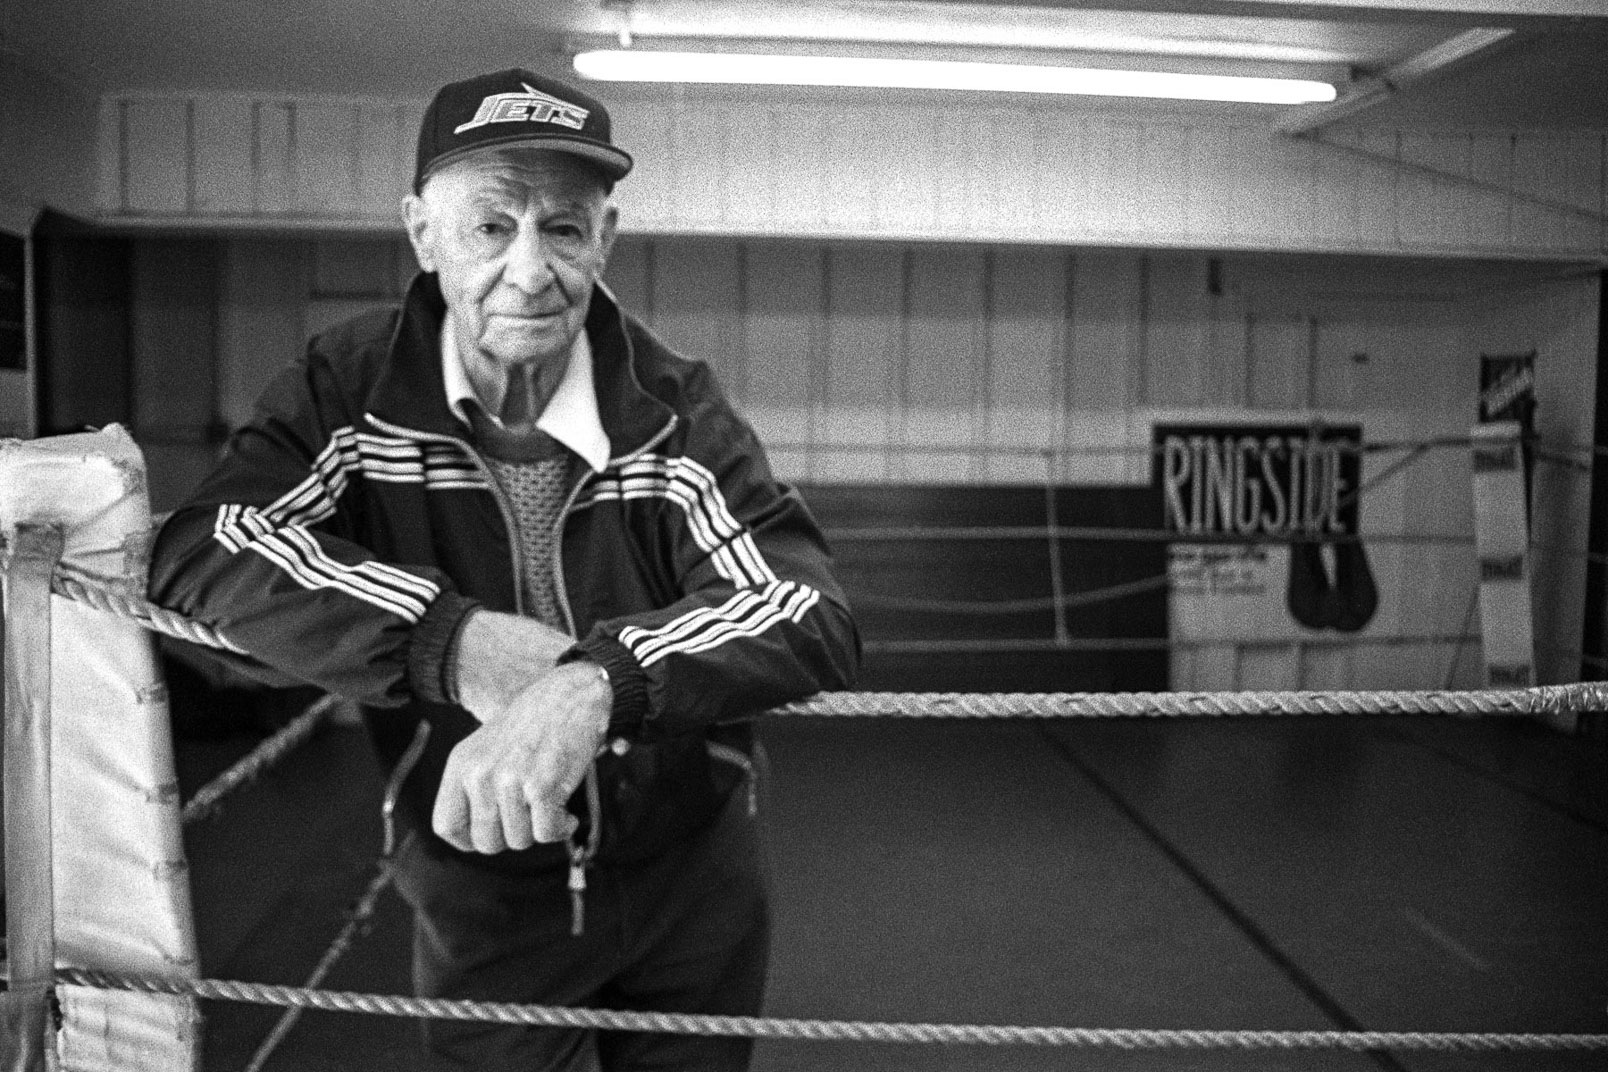 Black and white photograph of older man in Jets  hat leaning on ropes in boxing ring